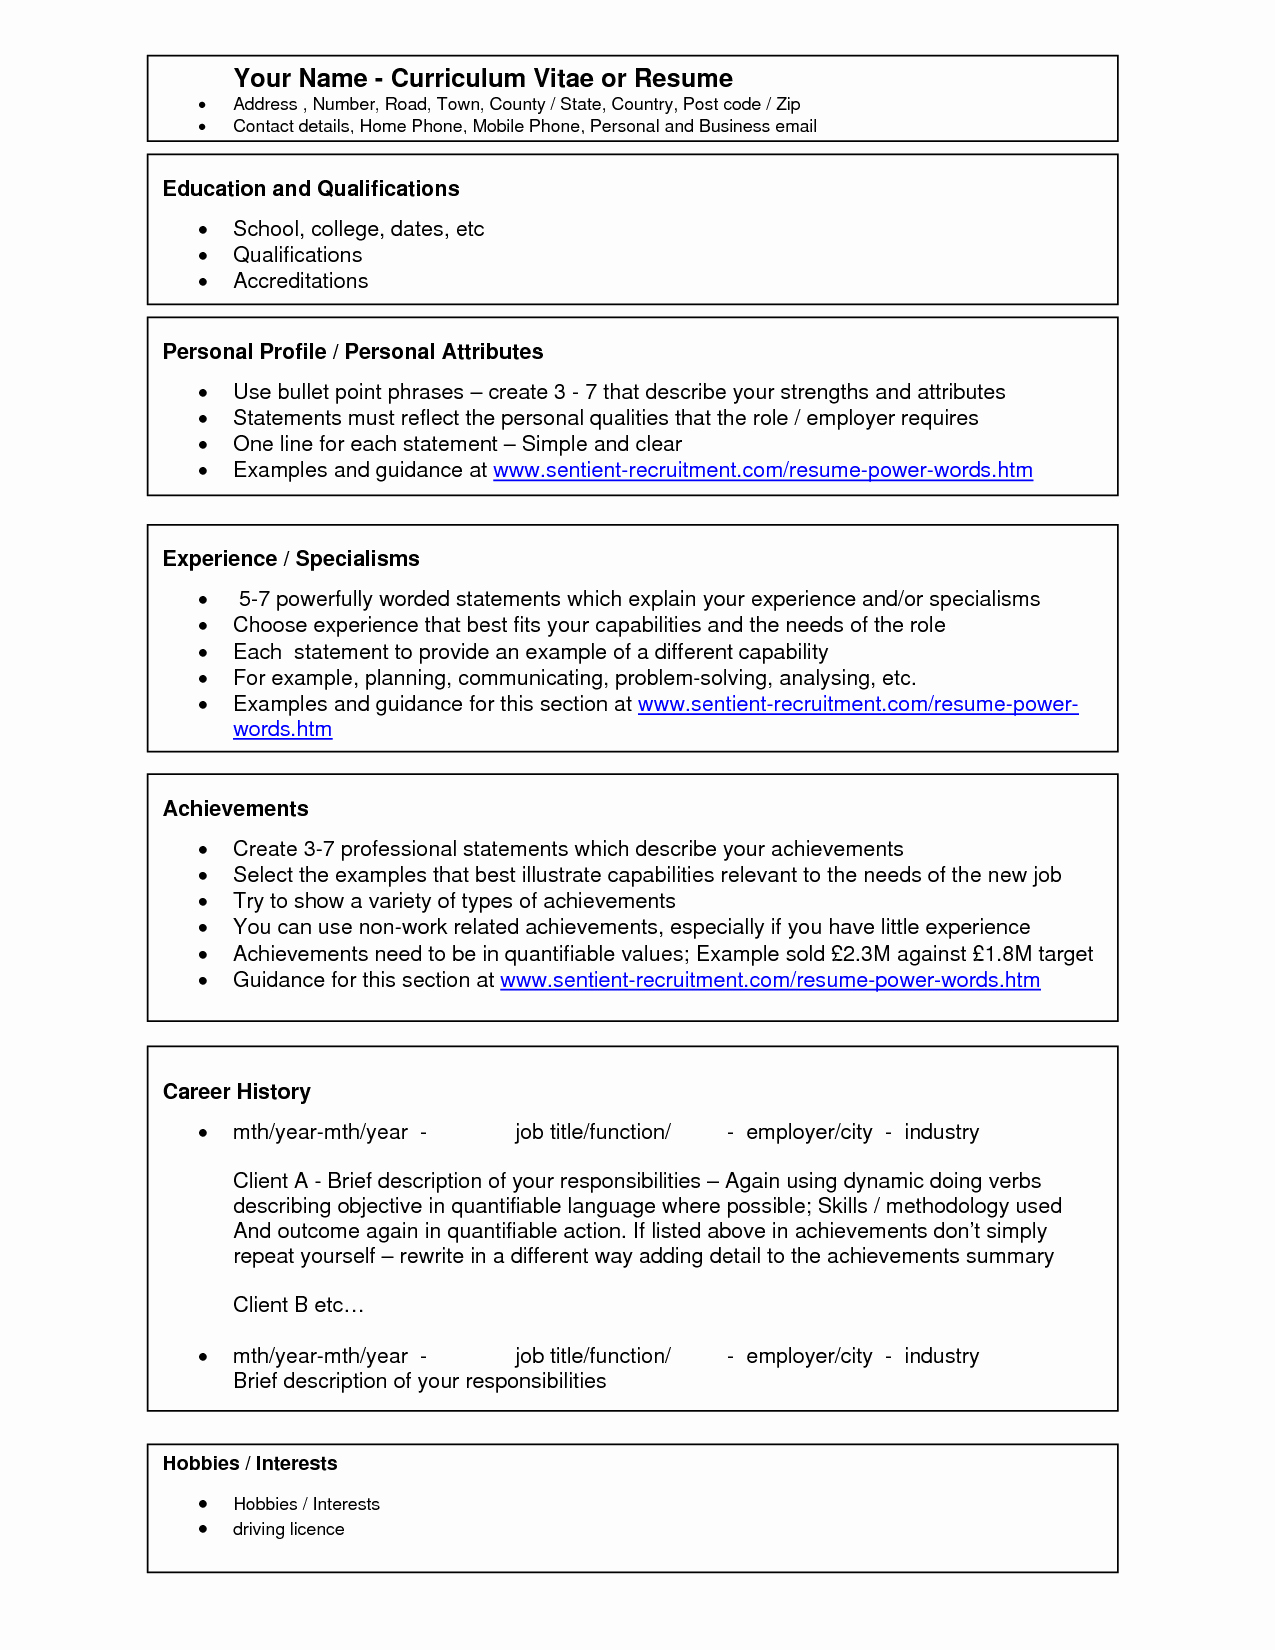 Resume Template Download Microsoft Word Elegant Pic Scope Of Work Template